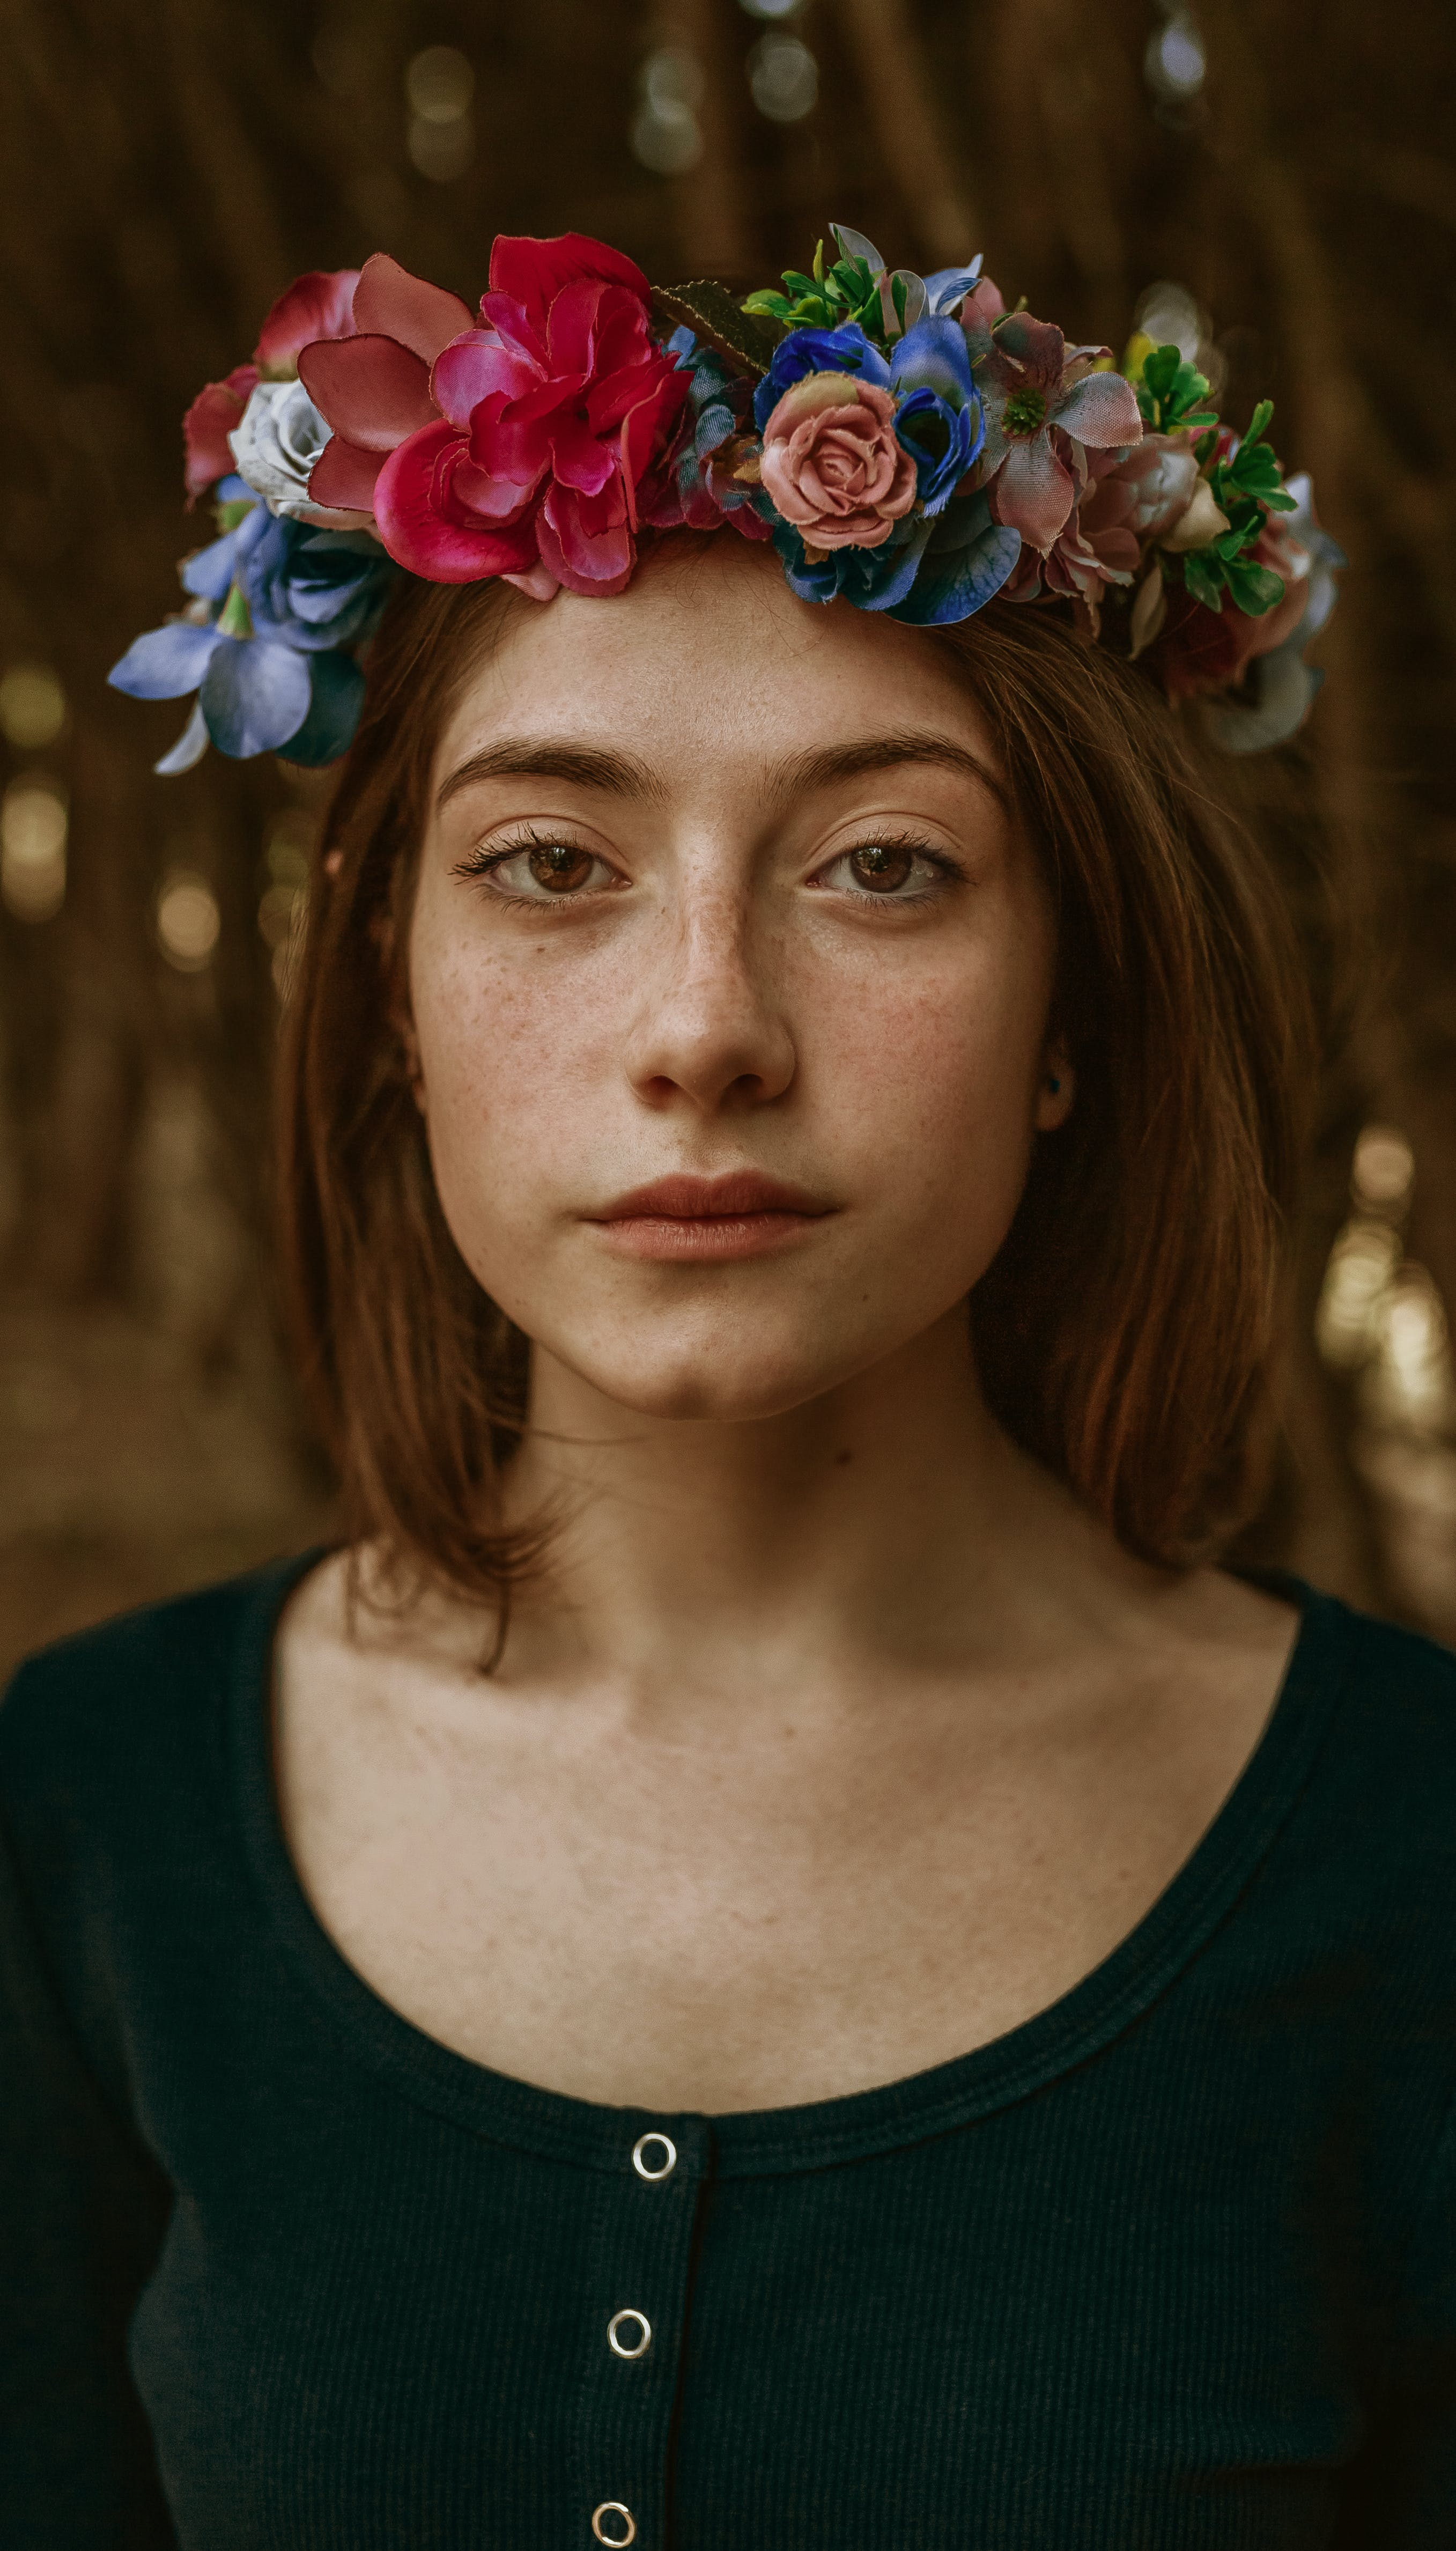 Close-up Photo of Woman Wearing Floral Headdress